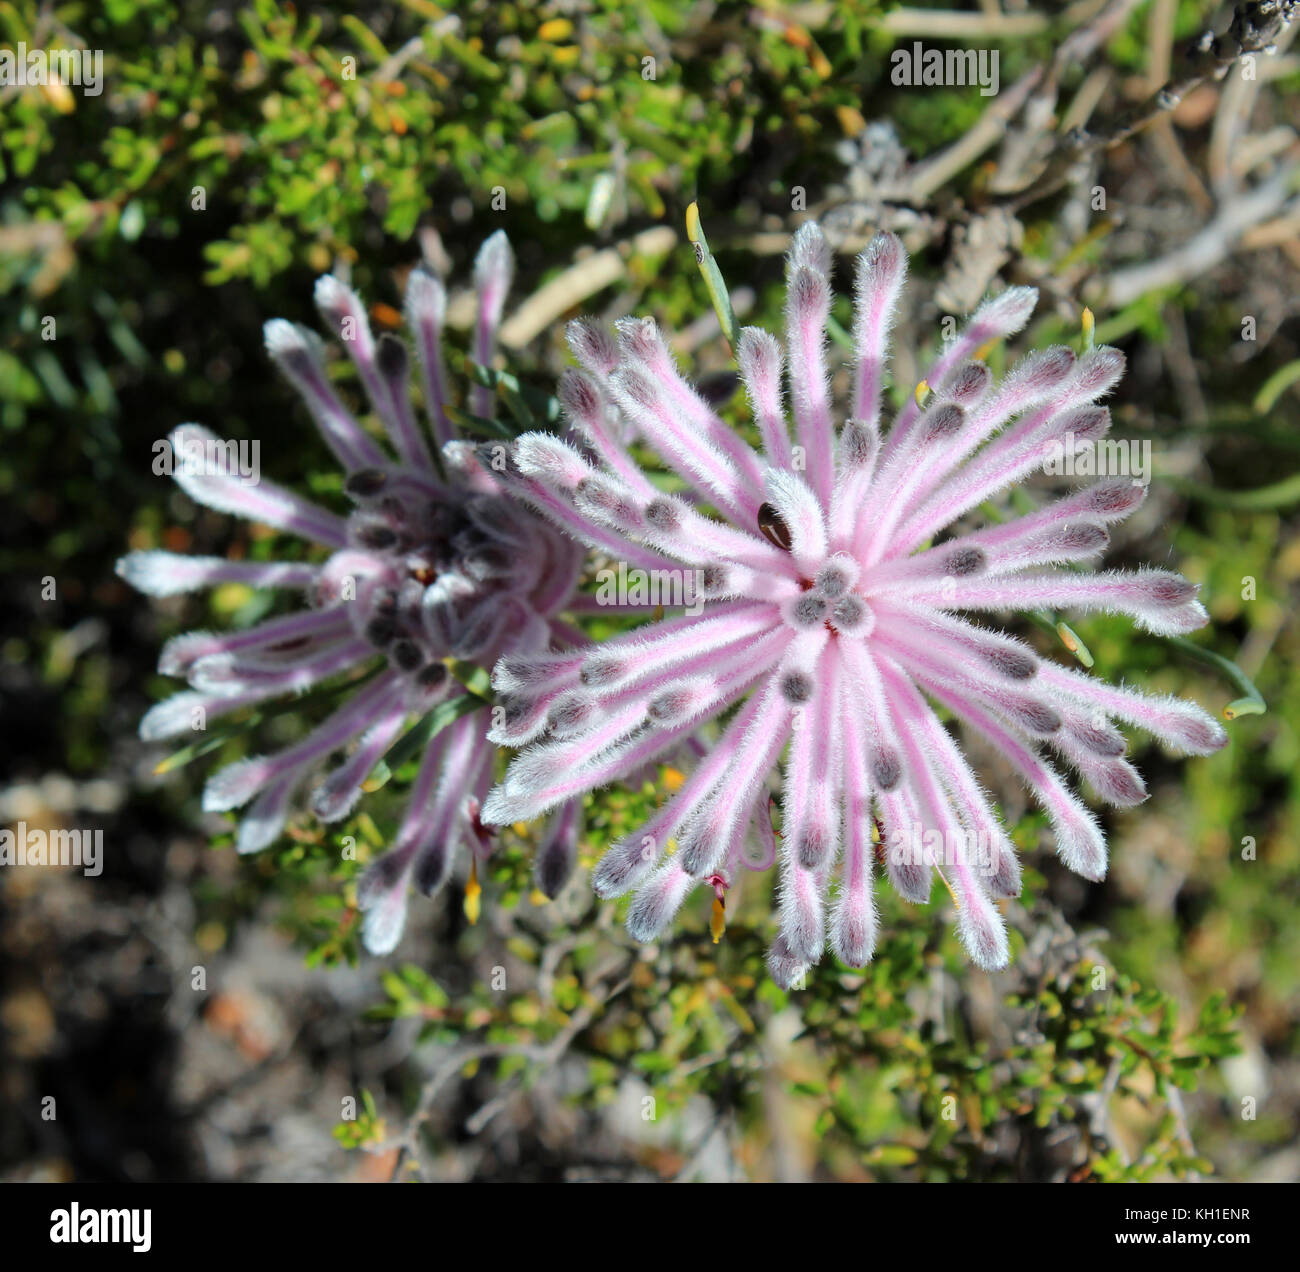 Petrophile linearis, pixie mops, a shrub in the plant genus Petrophile endemic to south-west Western Australia flowering - Stock Image